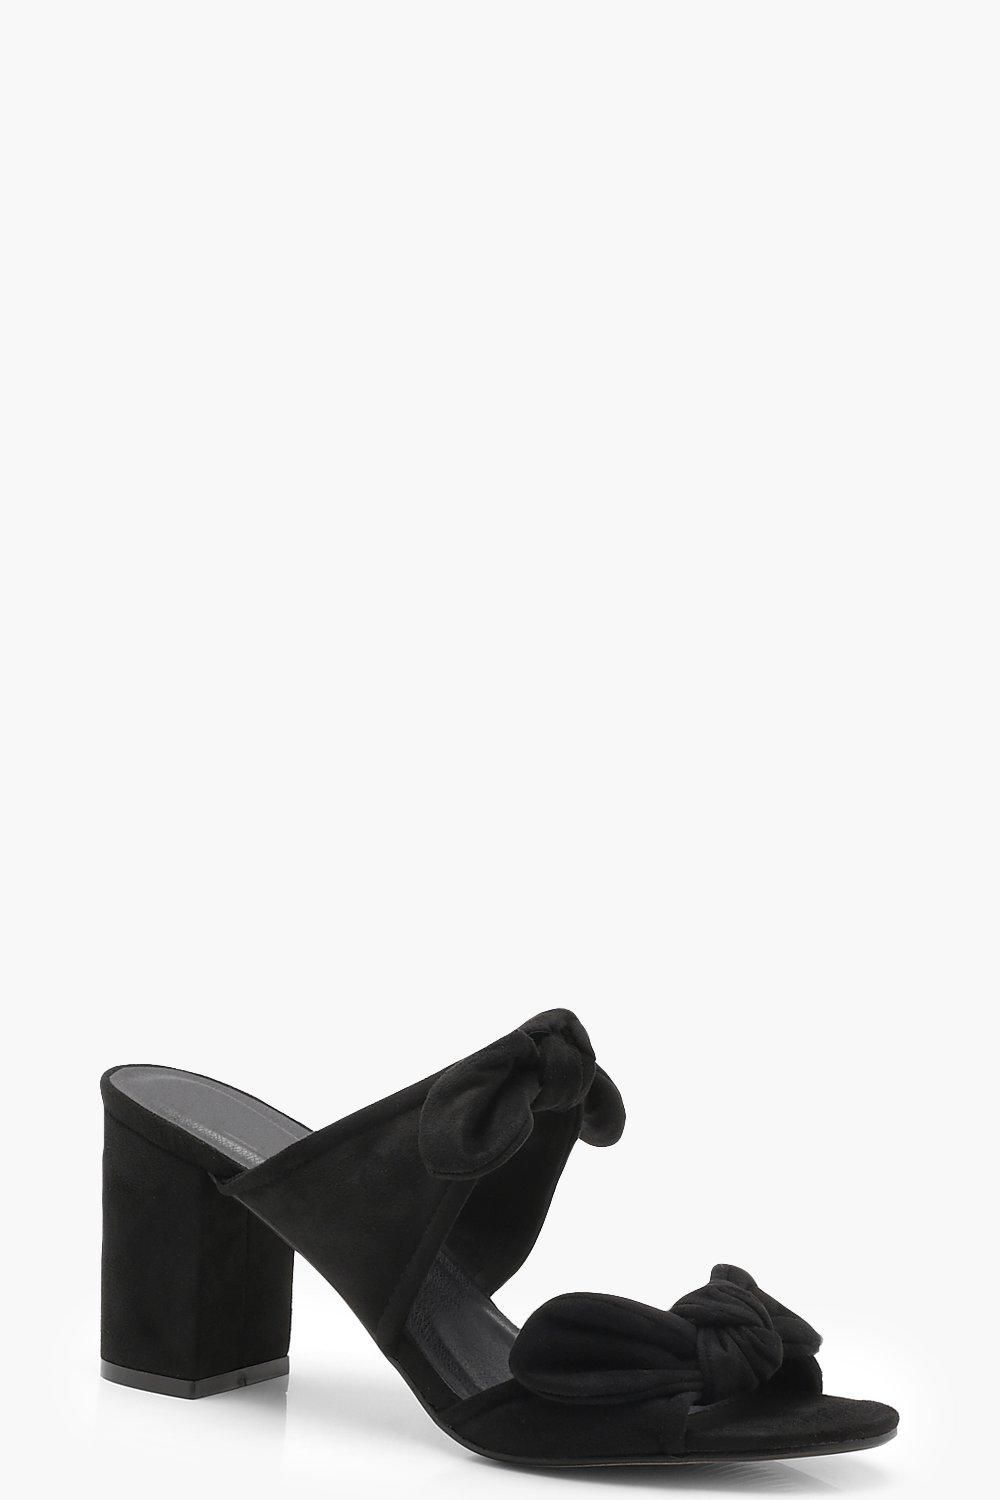 fa18668f3d2 Double Bow Detail Mule Heels in 2019 | Shoes | Heeled mules, Heels, Bows